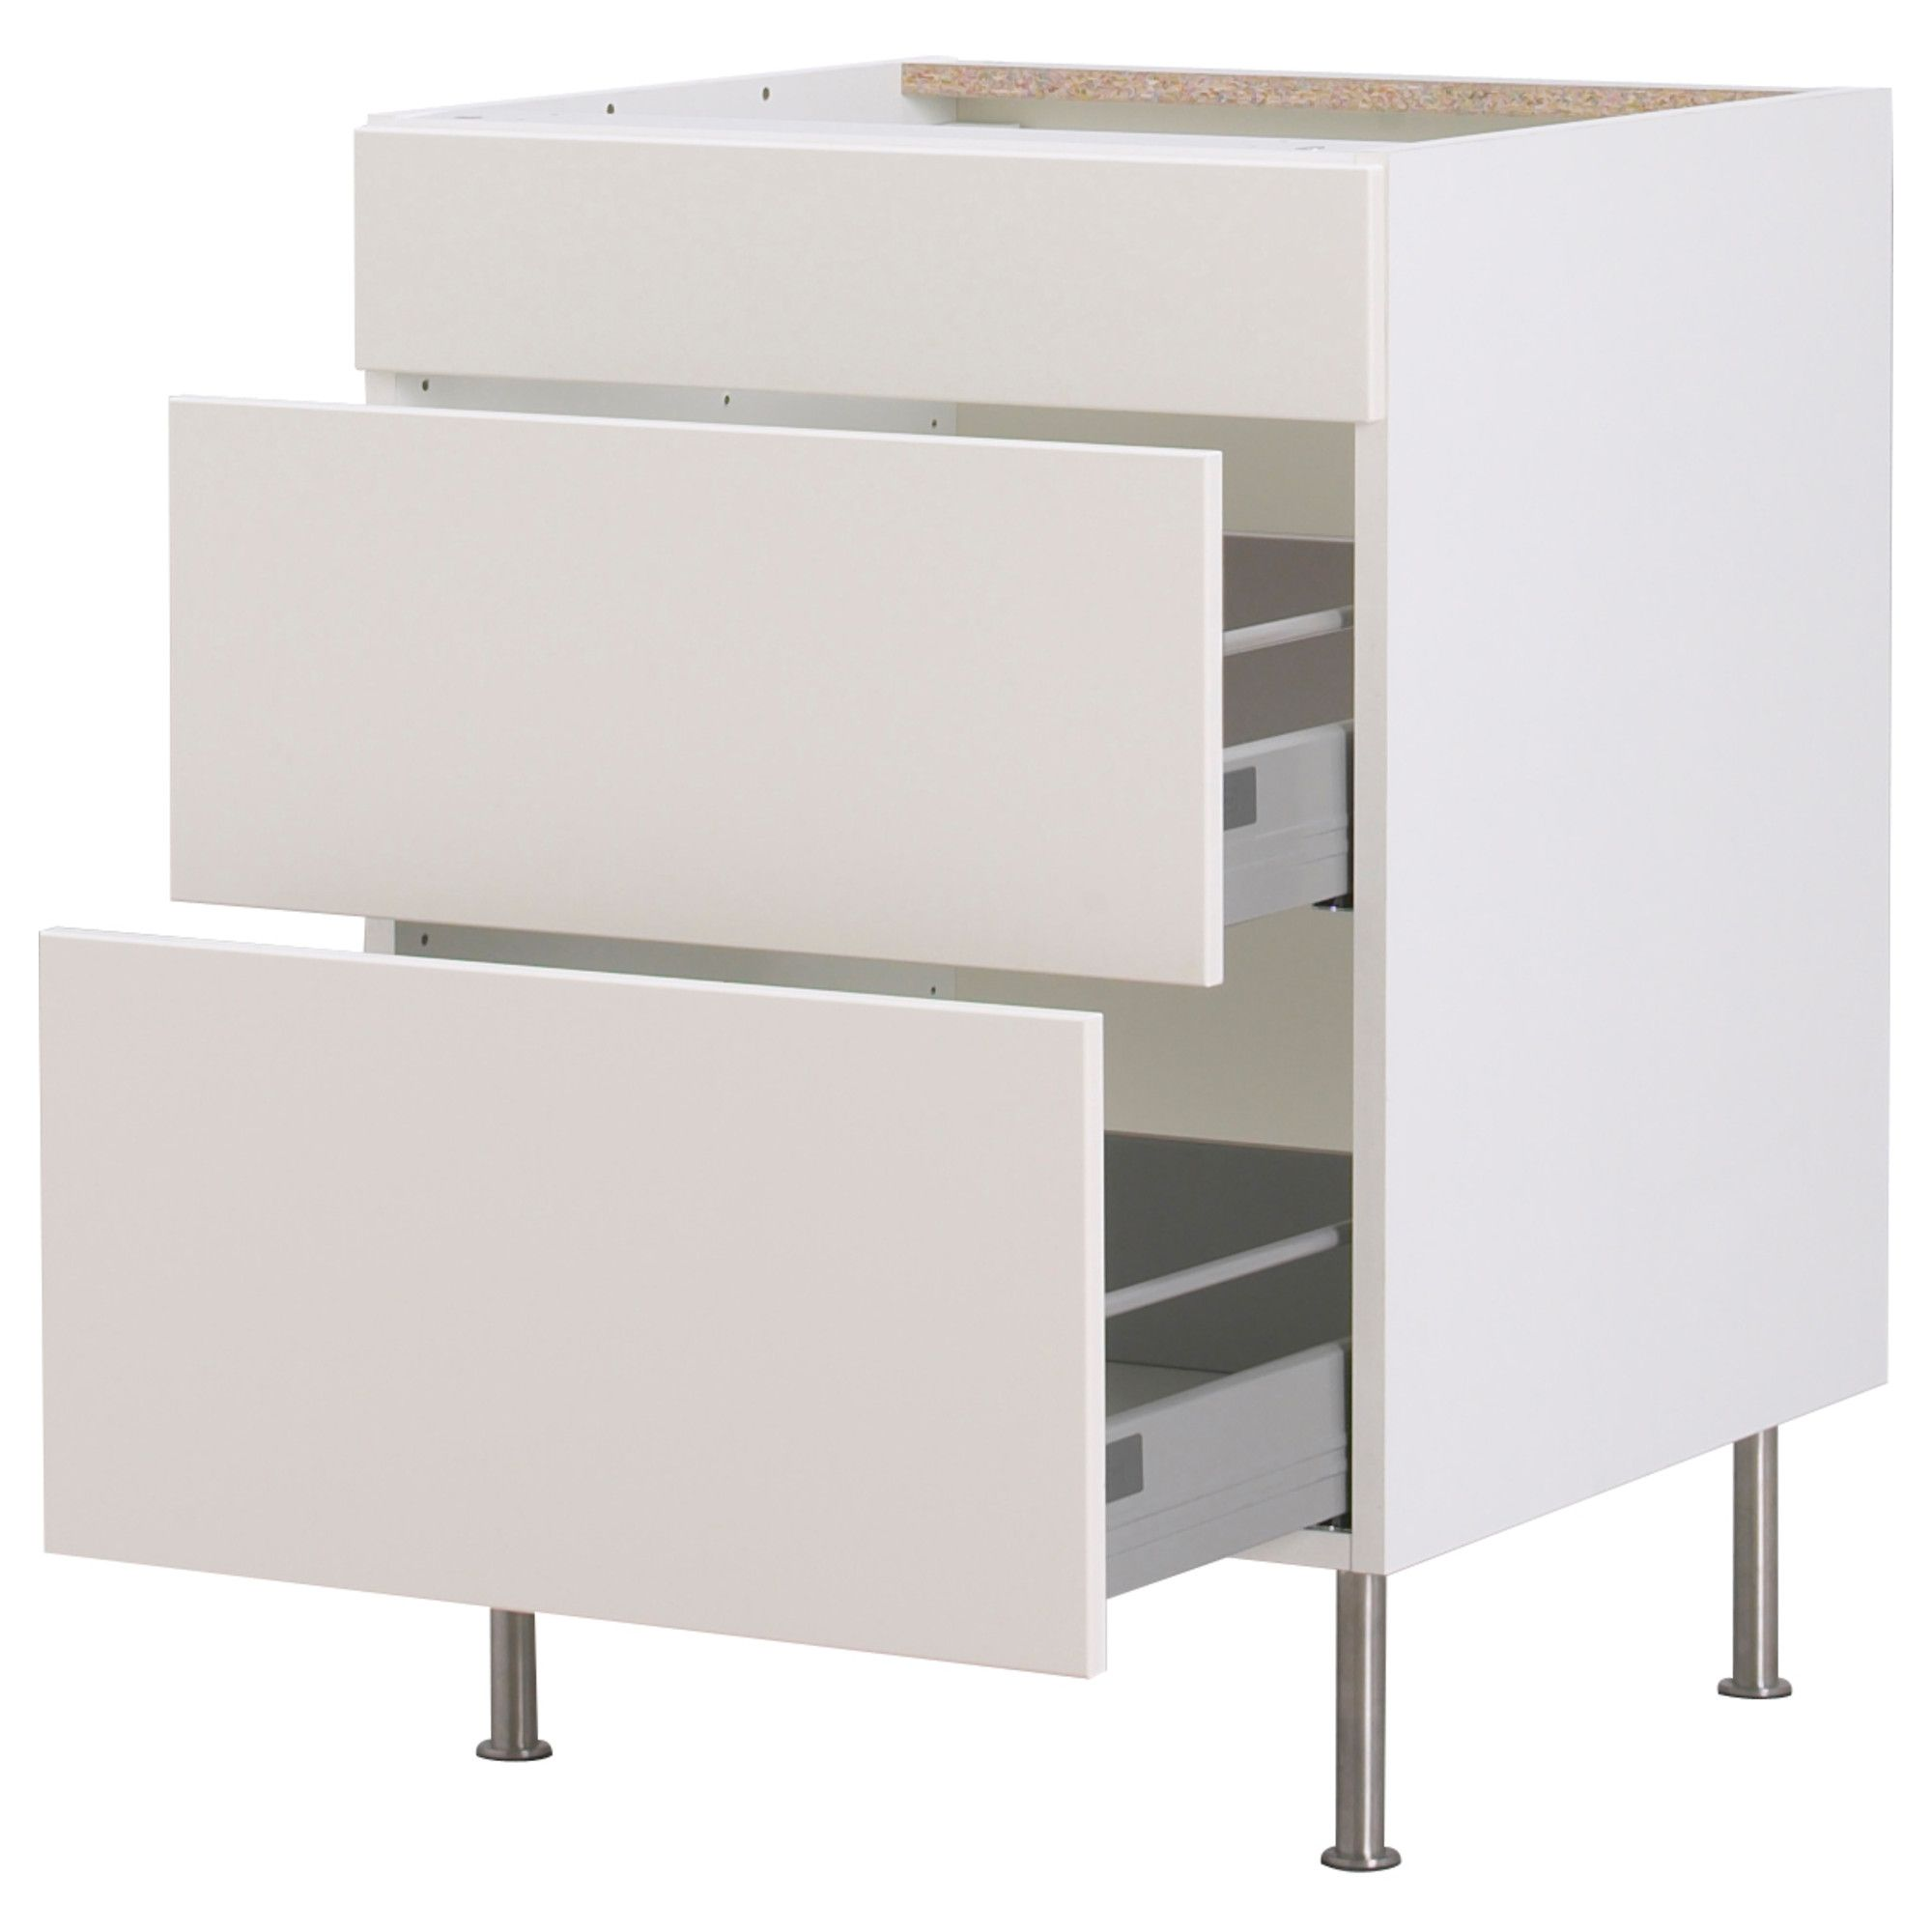 Sektion 15 Inch Wall Cabinets As Base Cabinets With Drawers Middle Has Six Drawers Each 5 Inche Ikea Wall Cabinets Ikea Kitchen Cabinets New Kitchen Cabinets